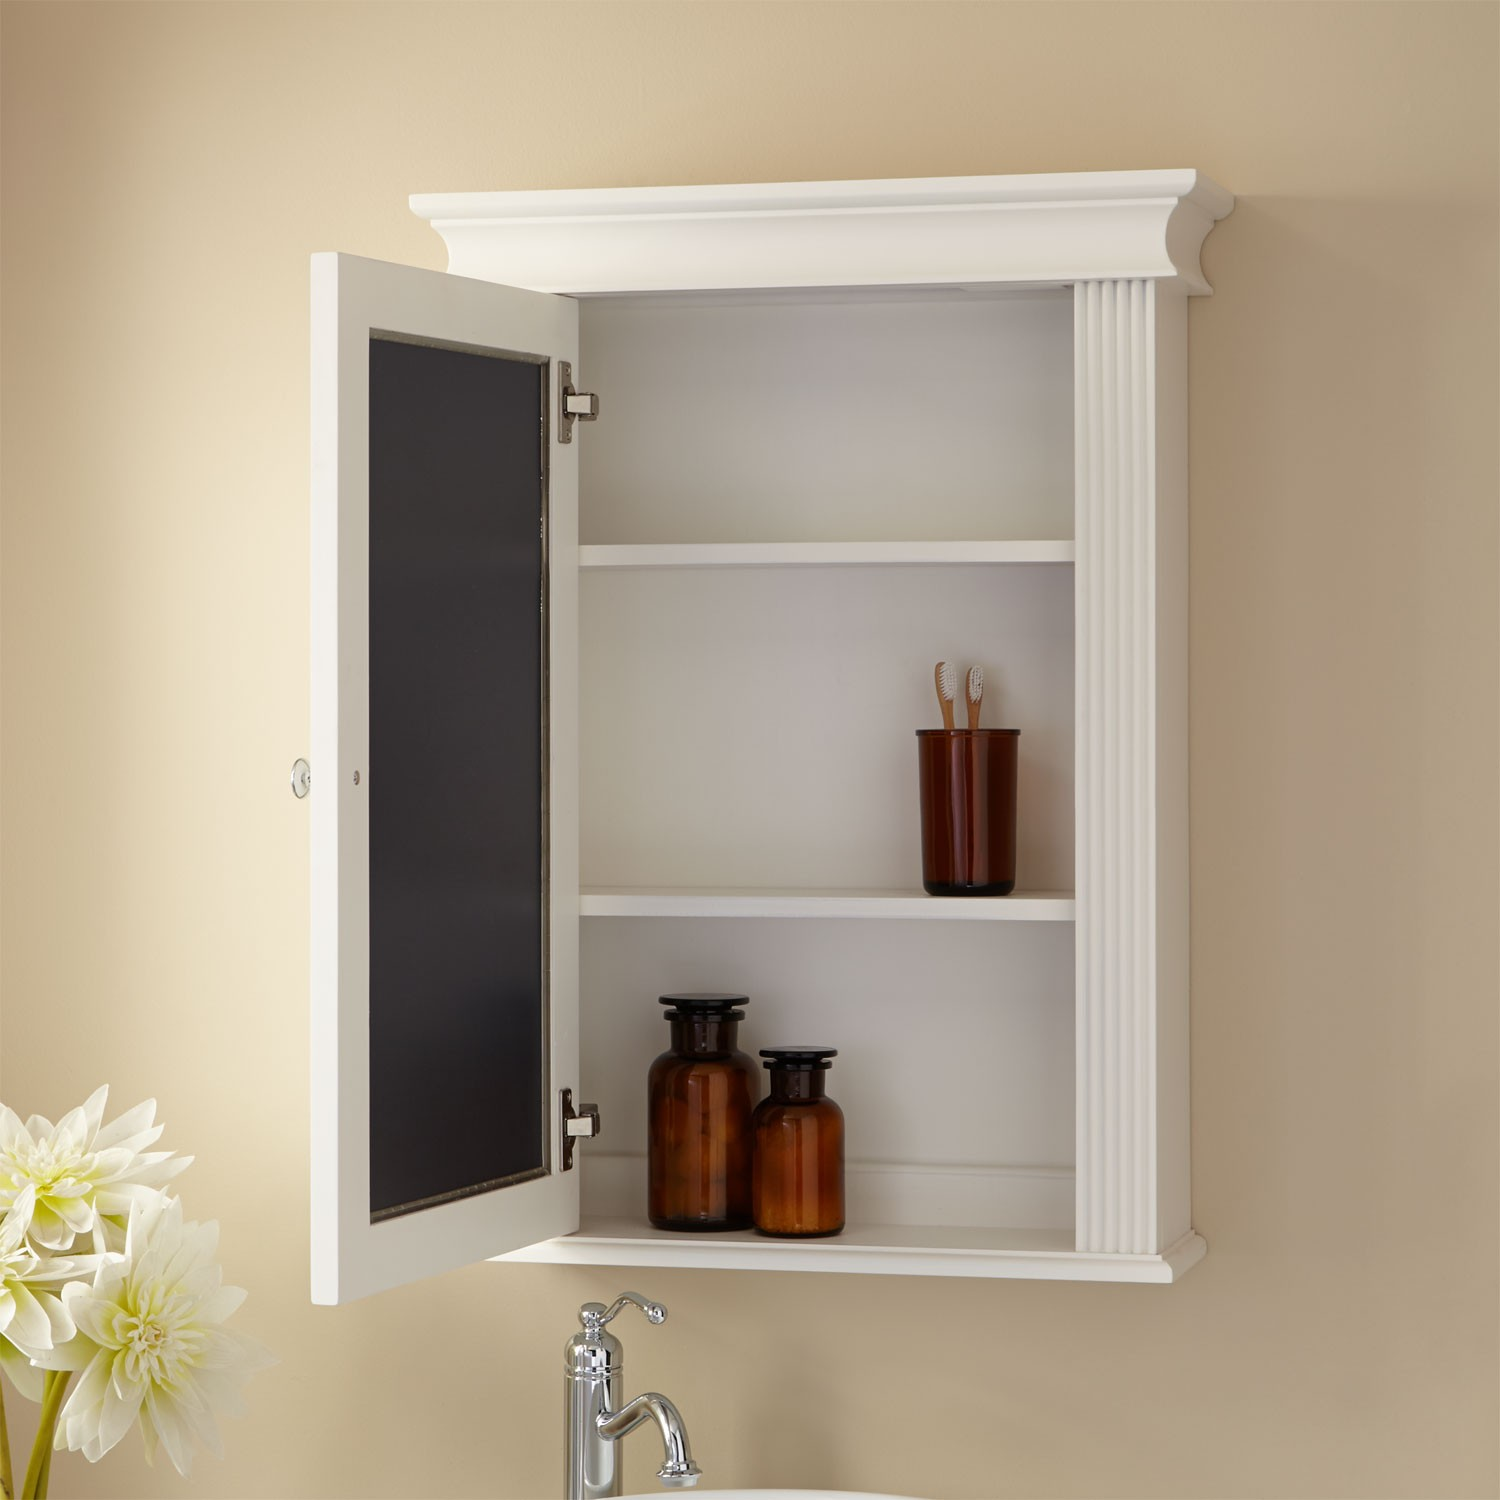 Good recessed medicine cabinet no mirror homesfeed - Bathroom mirrors and medicine cabinets ...